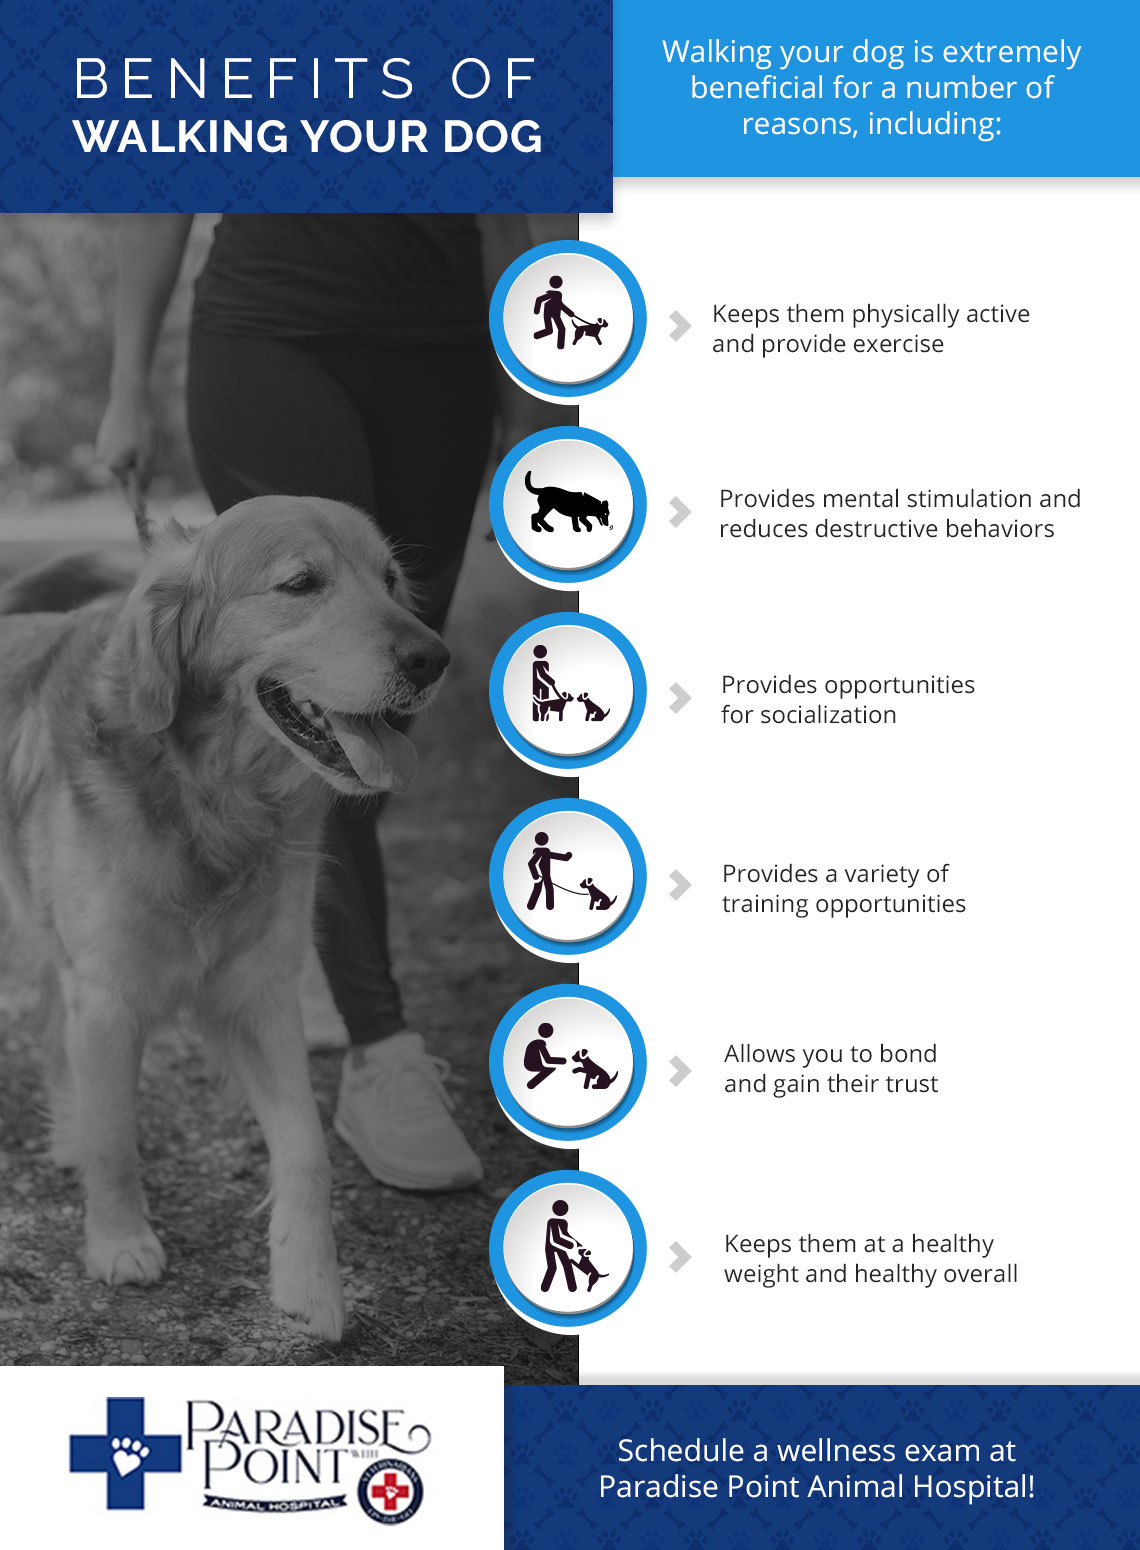 Benefits of Walking Your Dog Infographic